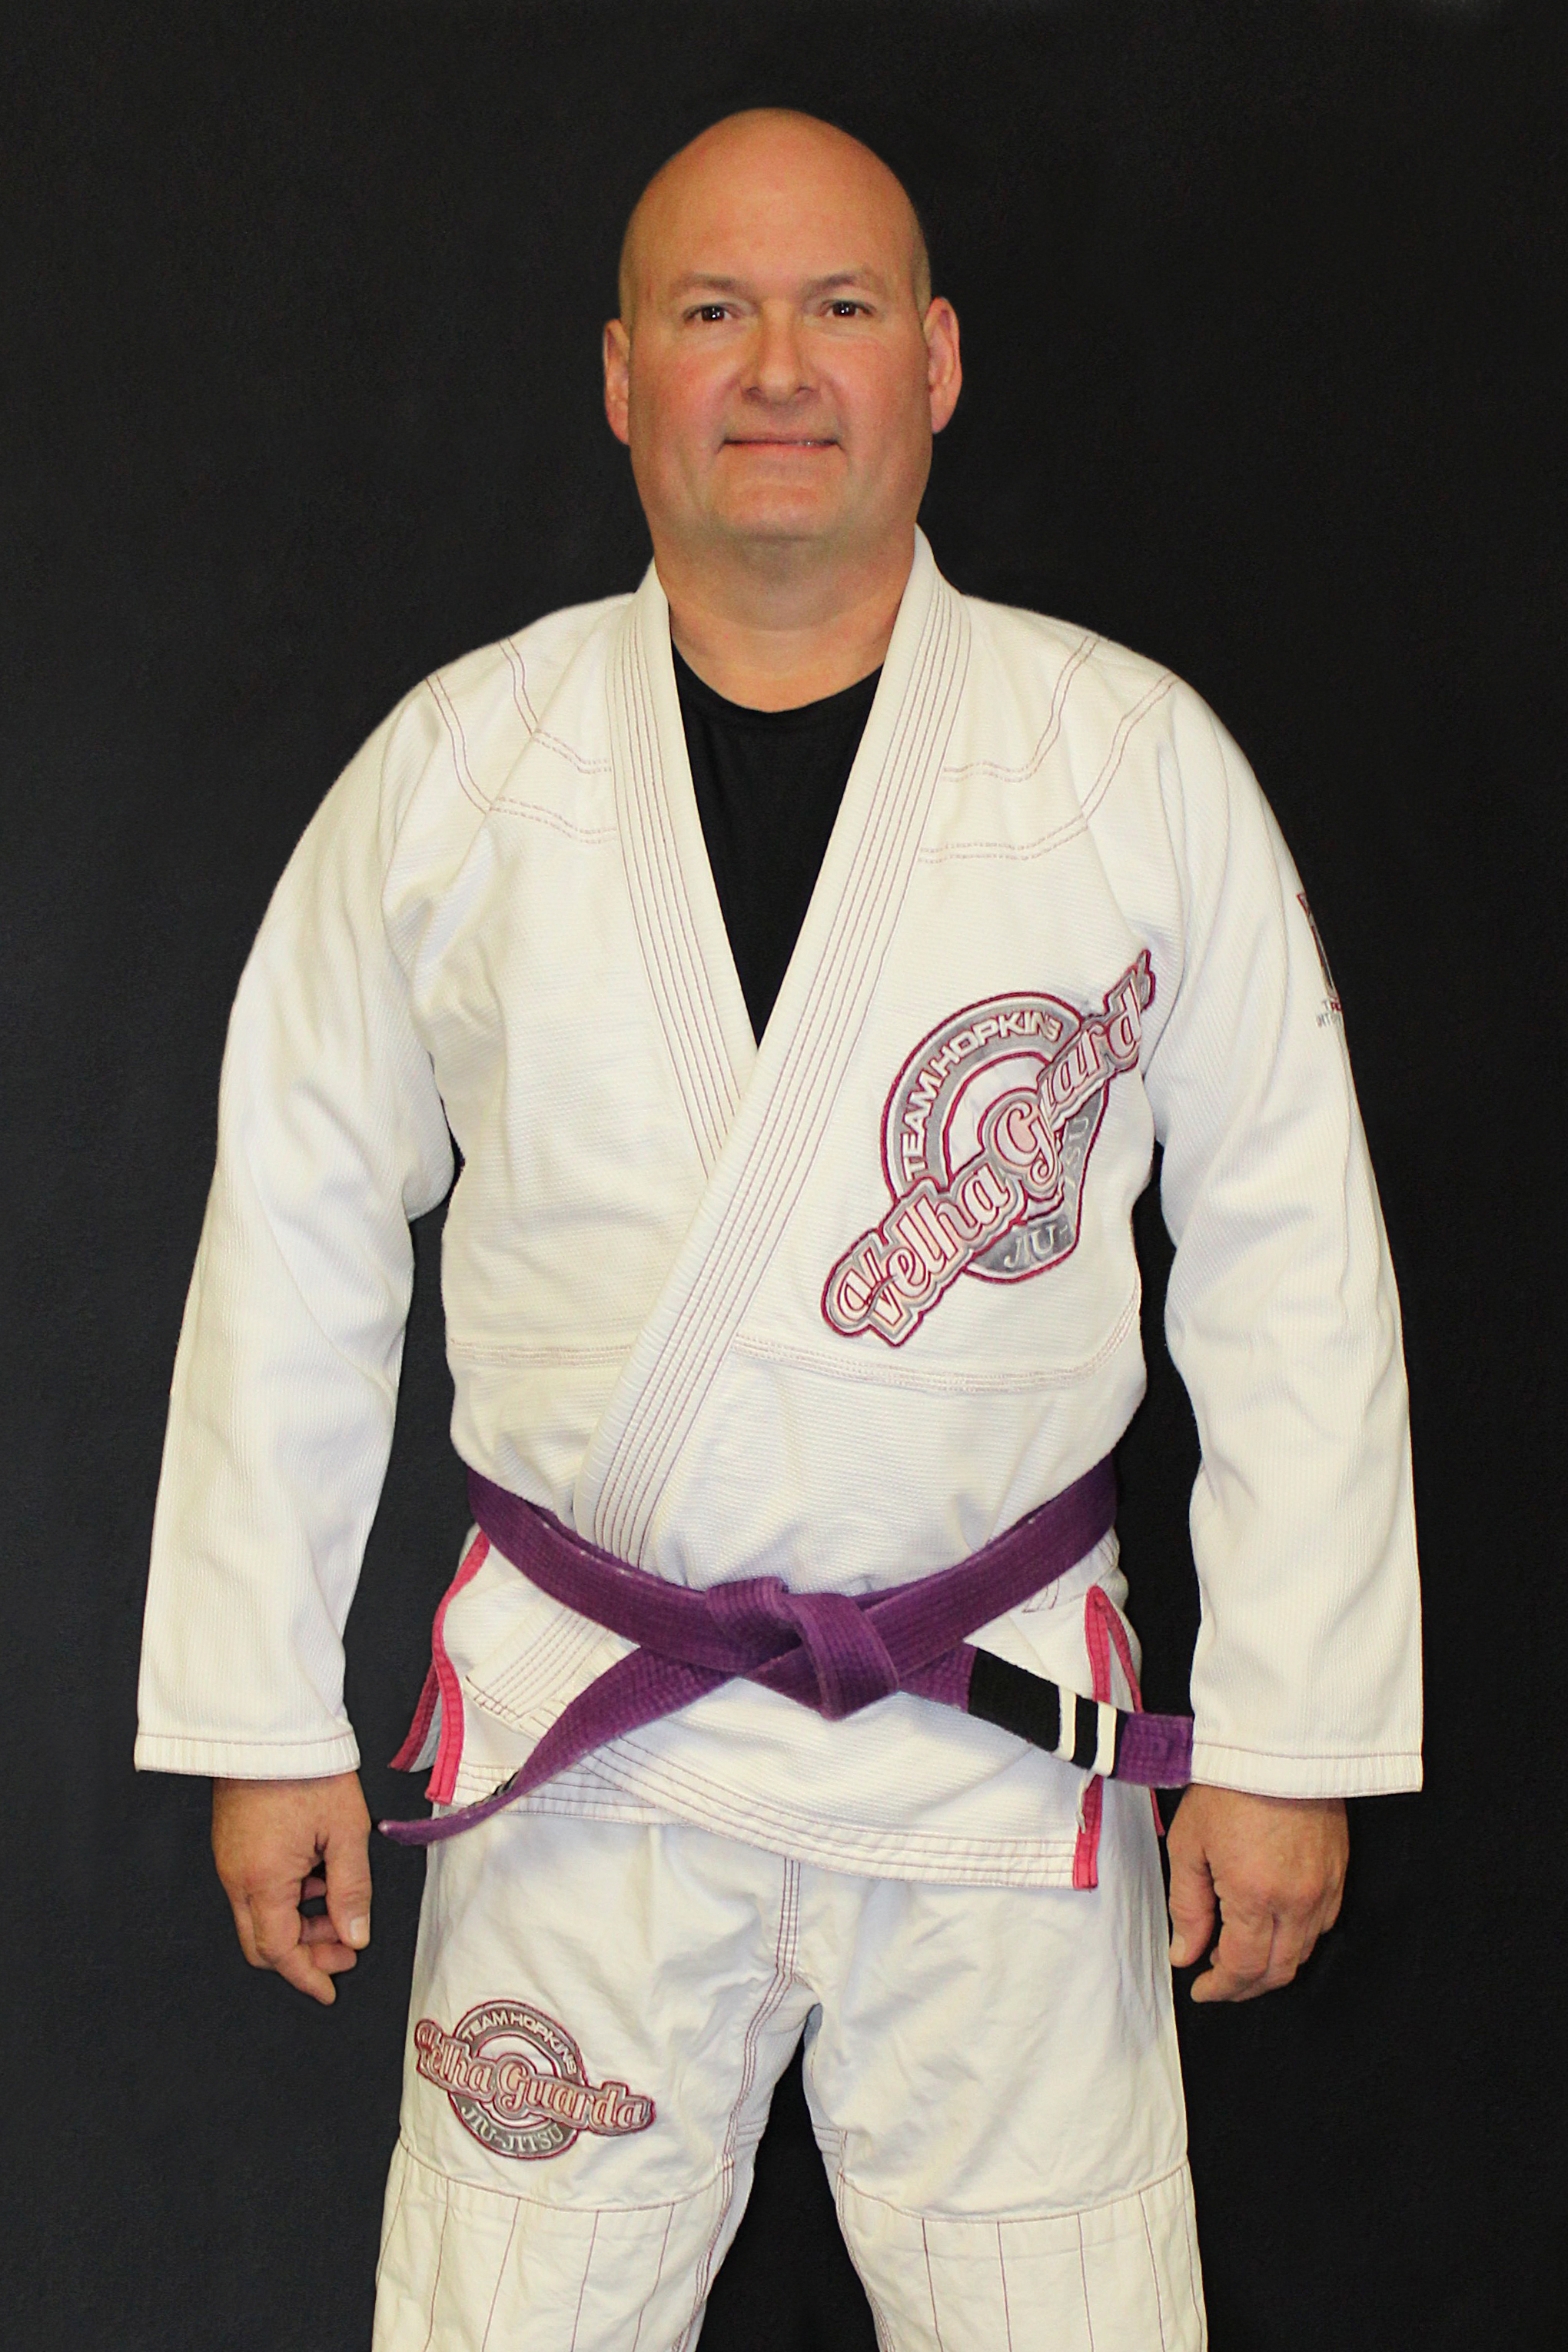 """Joe Boone - InstructorJoe is a Gracie Jiu-Jitsu Purple Belt under Black Belt Mike Braswell and has been training since 2008. He was awarded his Blue Belt in January 2015 by 3rd Degree Black Belt Allen Hopkins. Joe has been dubbed """"Shooter"""" at the Academy because of his extensive background in firearms which includes 20+ years combined experience in professional gunsmithing & firearms manufacturing. He holds the classification of Grandmaster in United States Practical Shooting Association (U.S.P.S.A.). His professional shooting career has taken him all over the United States, Europe, Africa, and Asia to compete."""